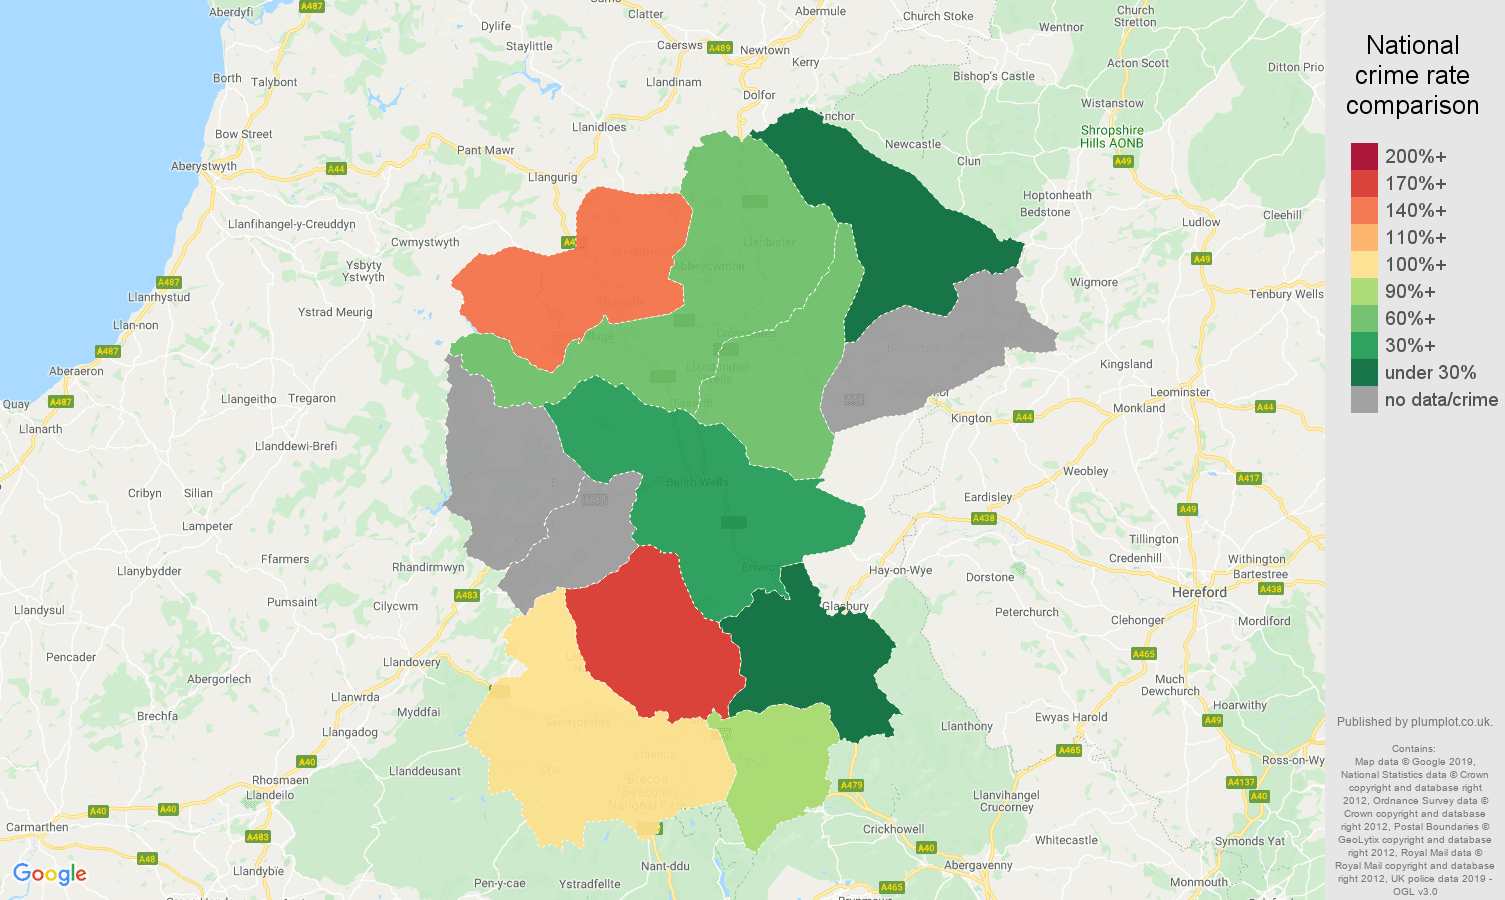 Llandrindod Wells possession of weapons crime rate comparison map